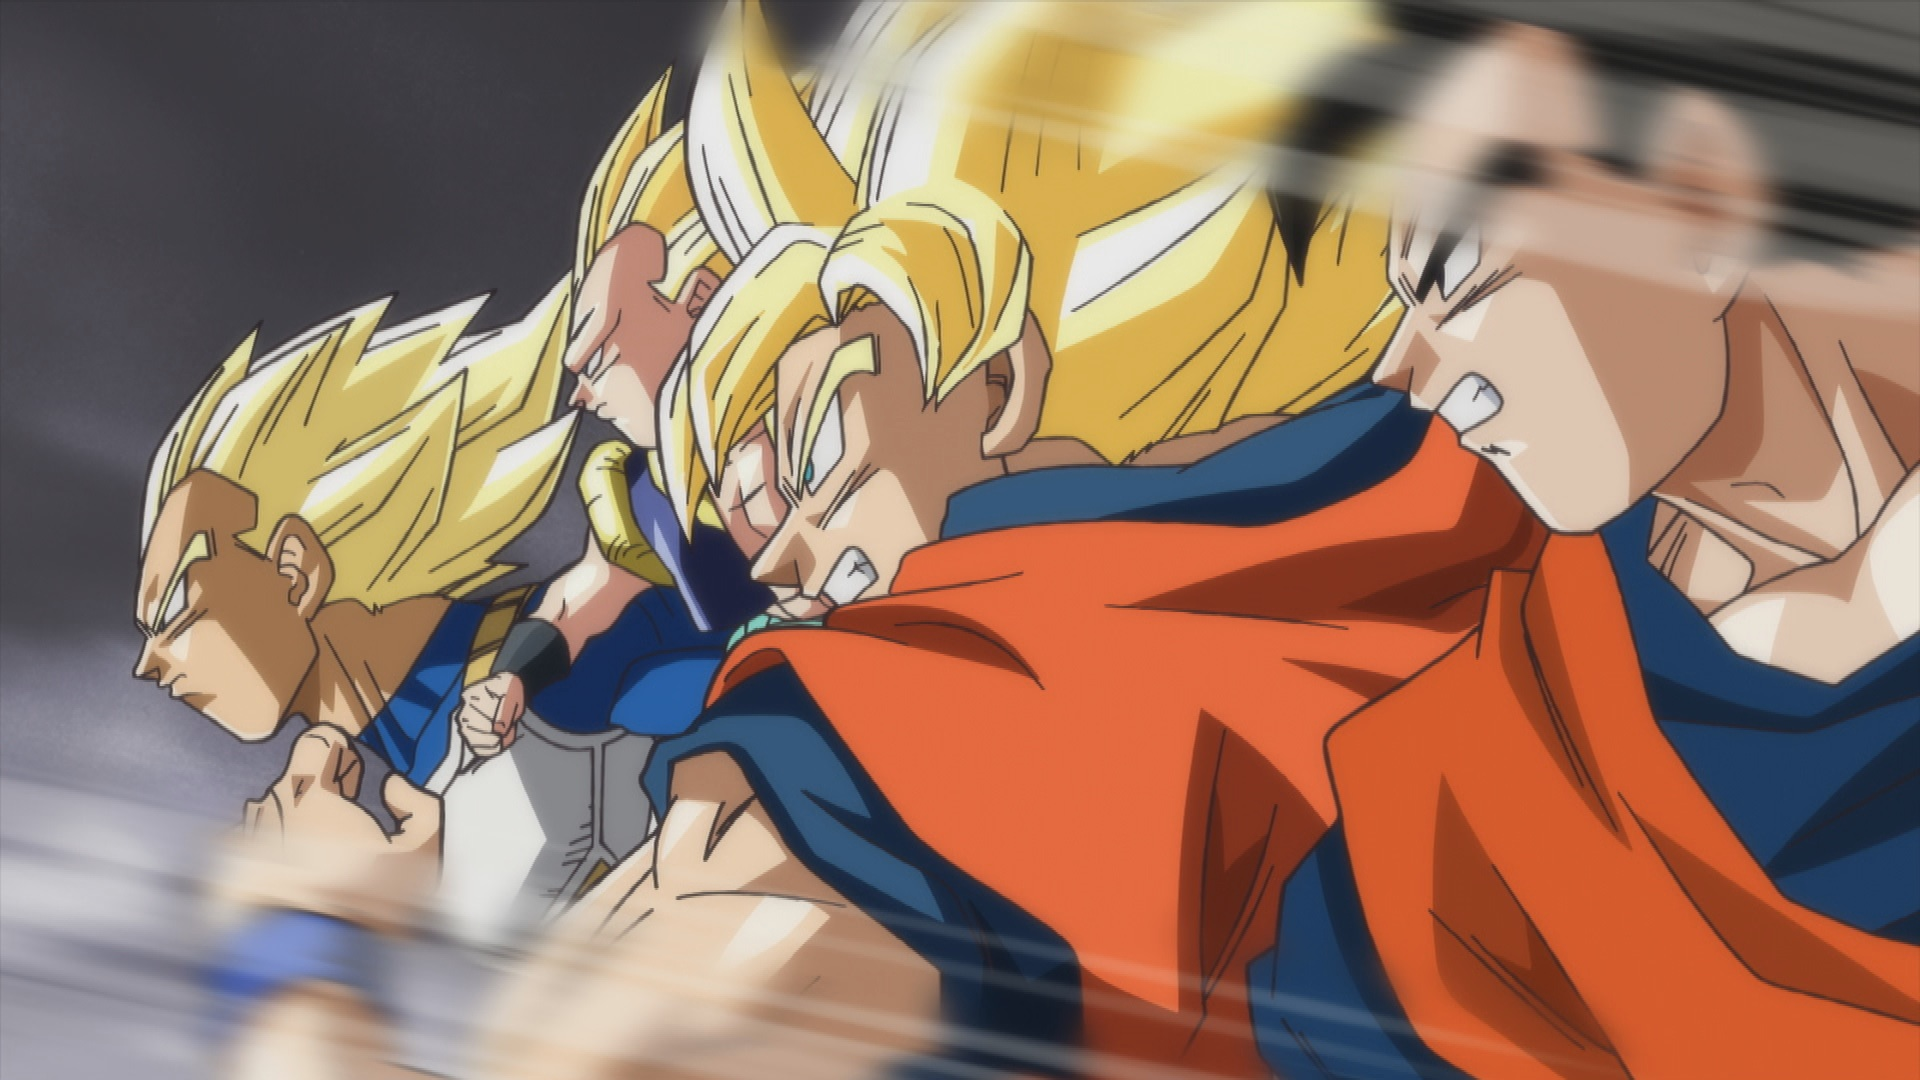 Dragon ball z battle of z coming west in early 2014 vg247 - Dragon ball z image ...